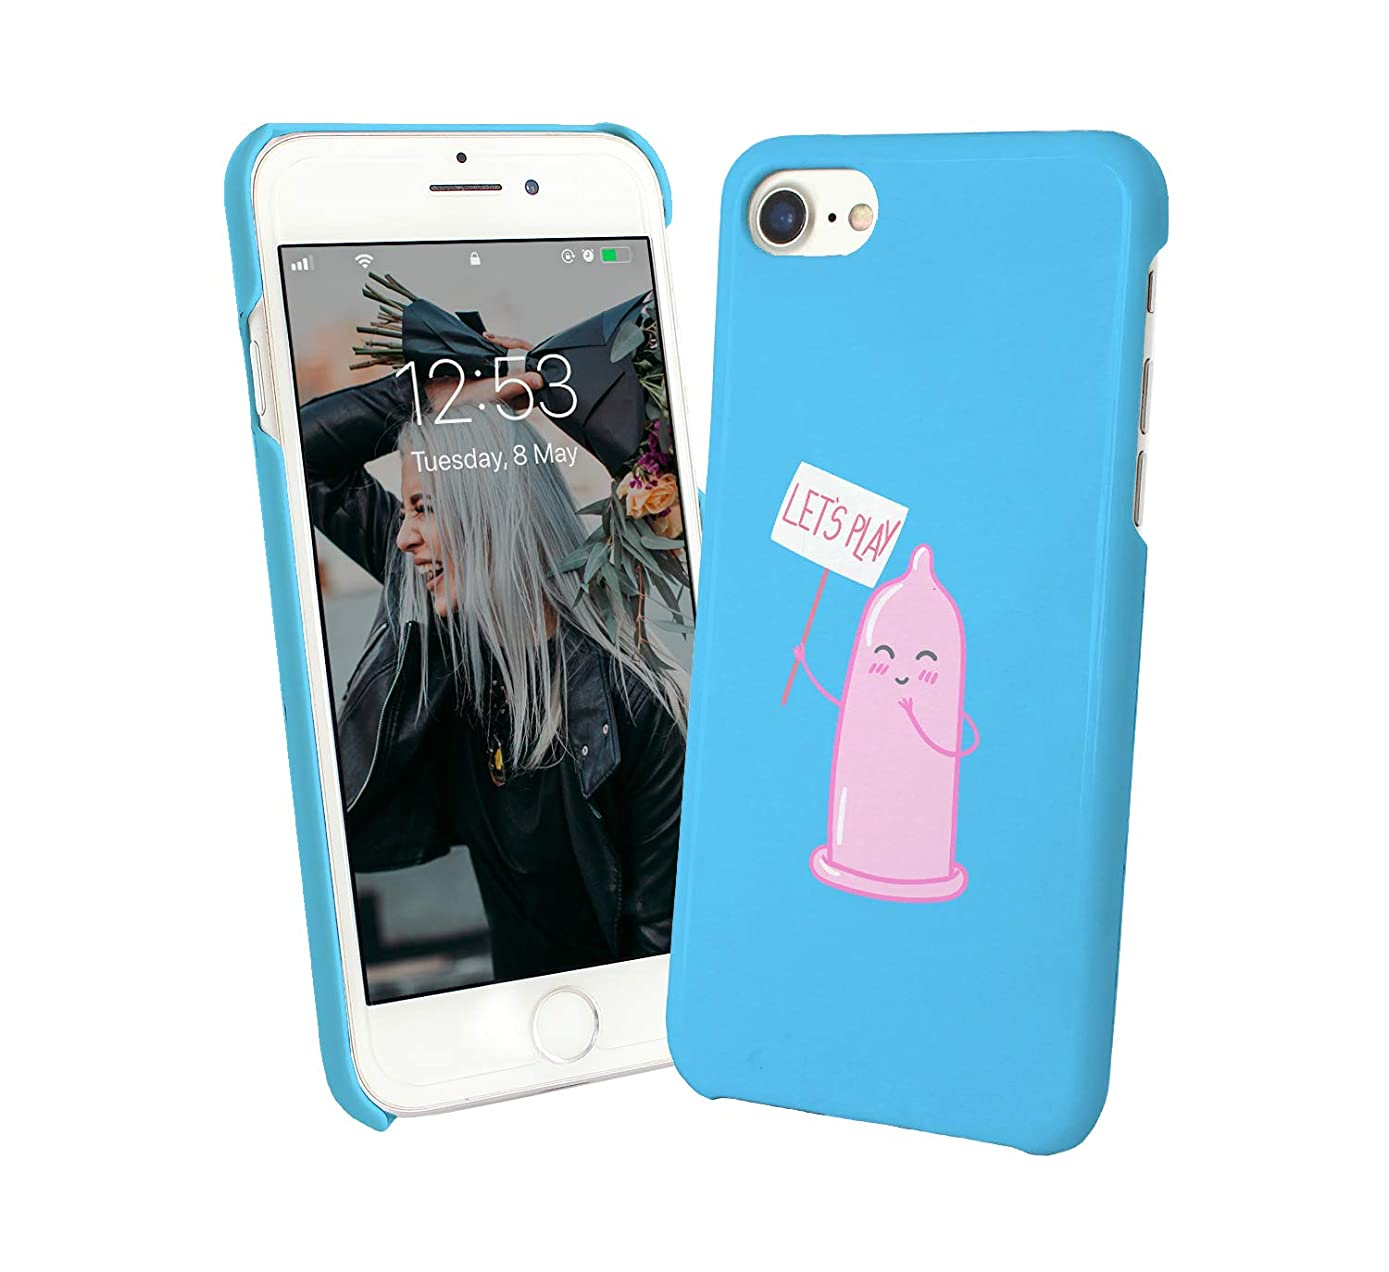 Cute Condom Let's Play_004005 Protective Case Cover Hard Plastic iPhone Xs MAX (2018) Funny Gift Christmas for Him for Her